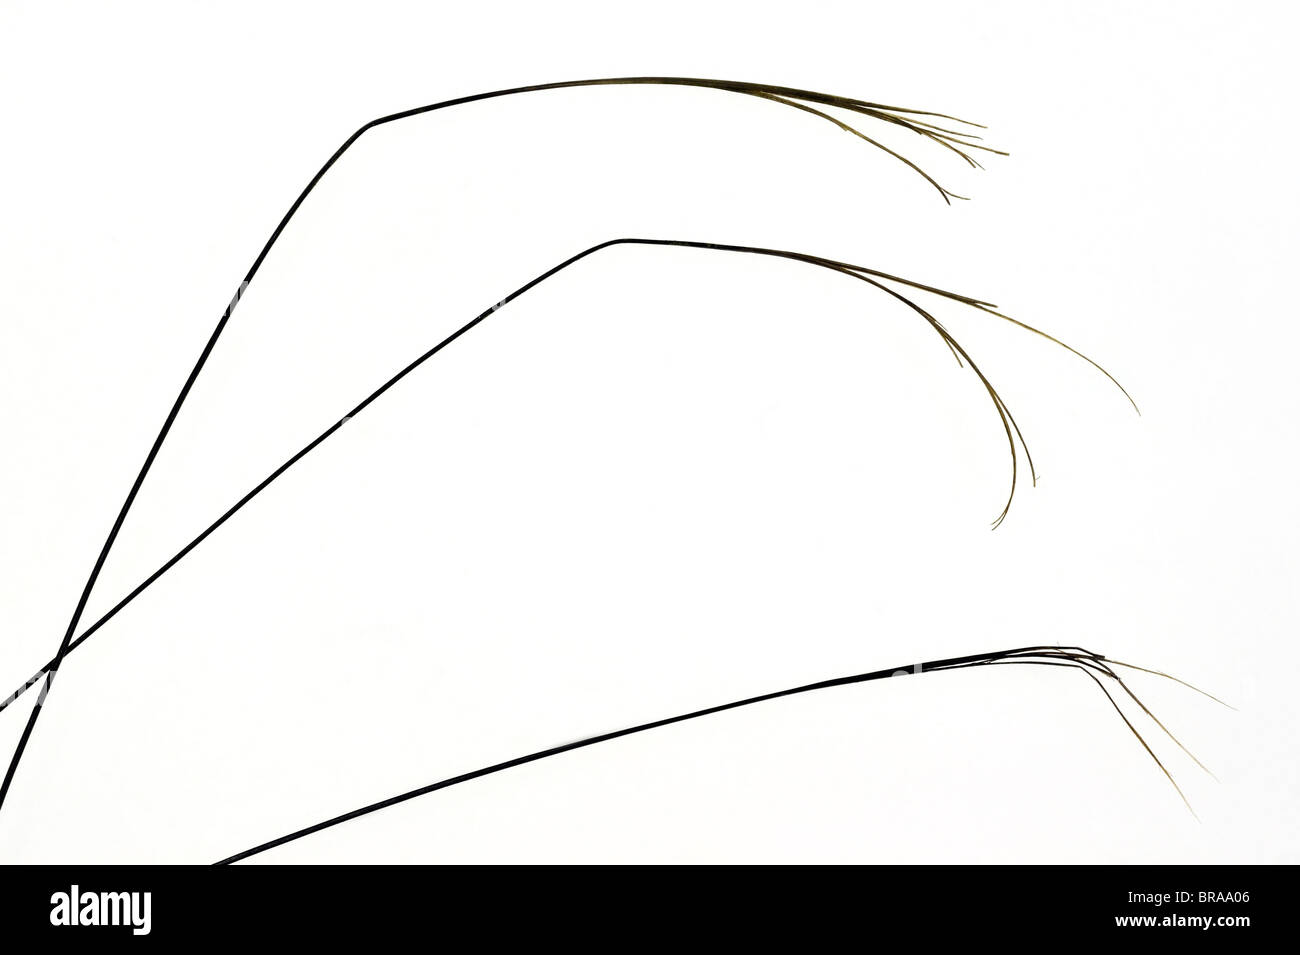 Close-up of split badger hairs (Meles meles) - Stock Image